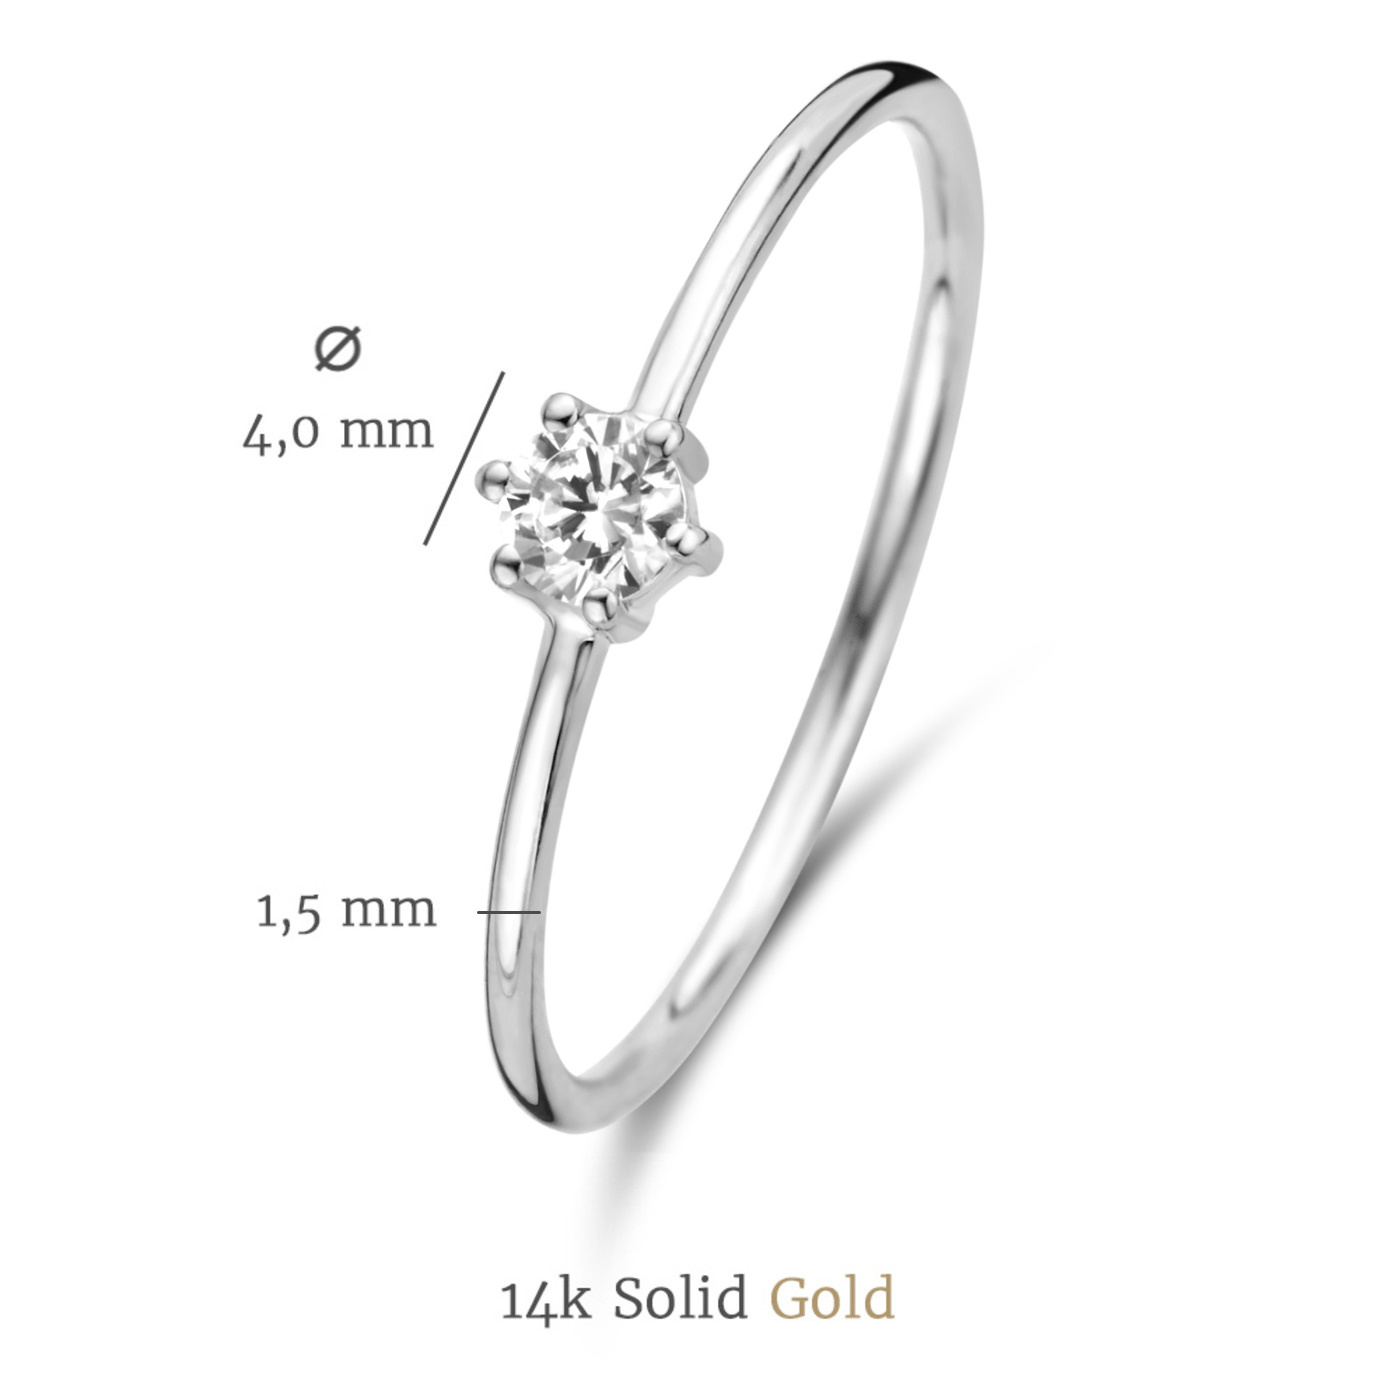 Isabel Bernard Saint Germain Abelle 14 karat white gold ring with zirconia